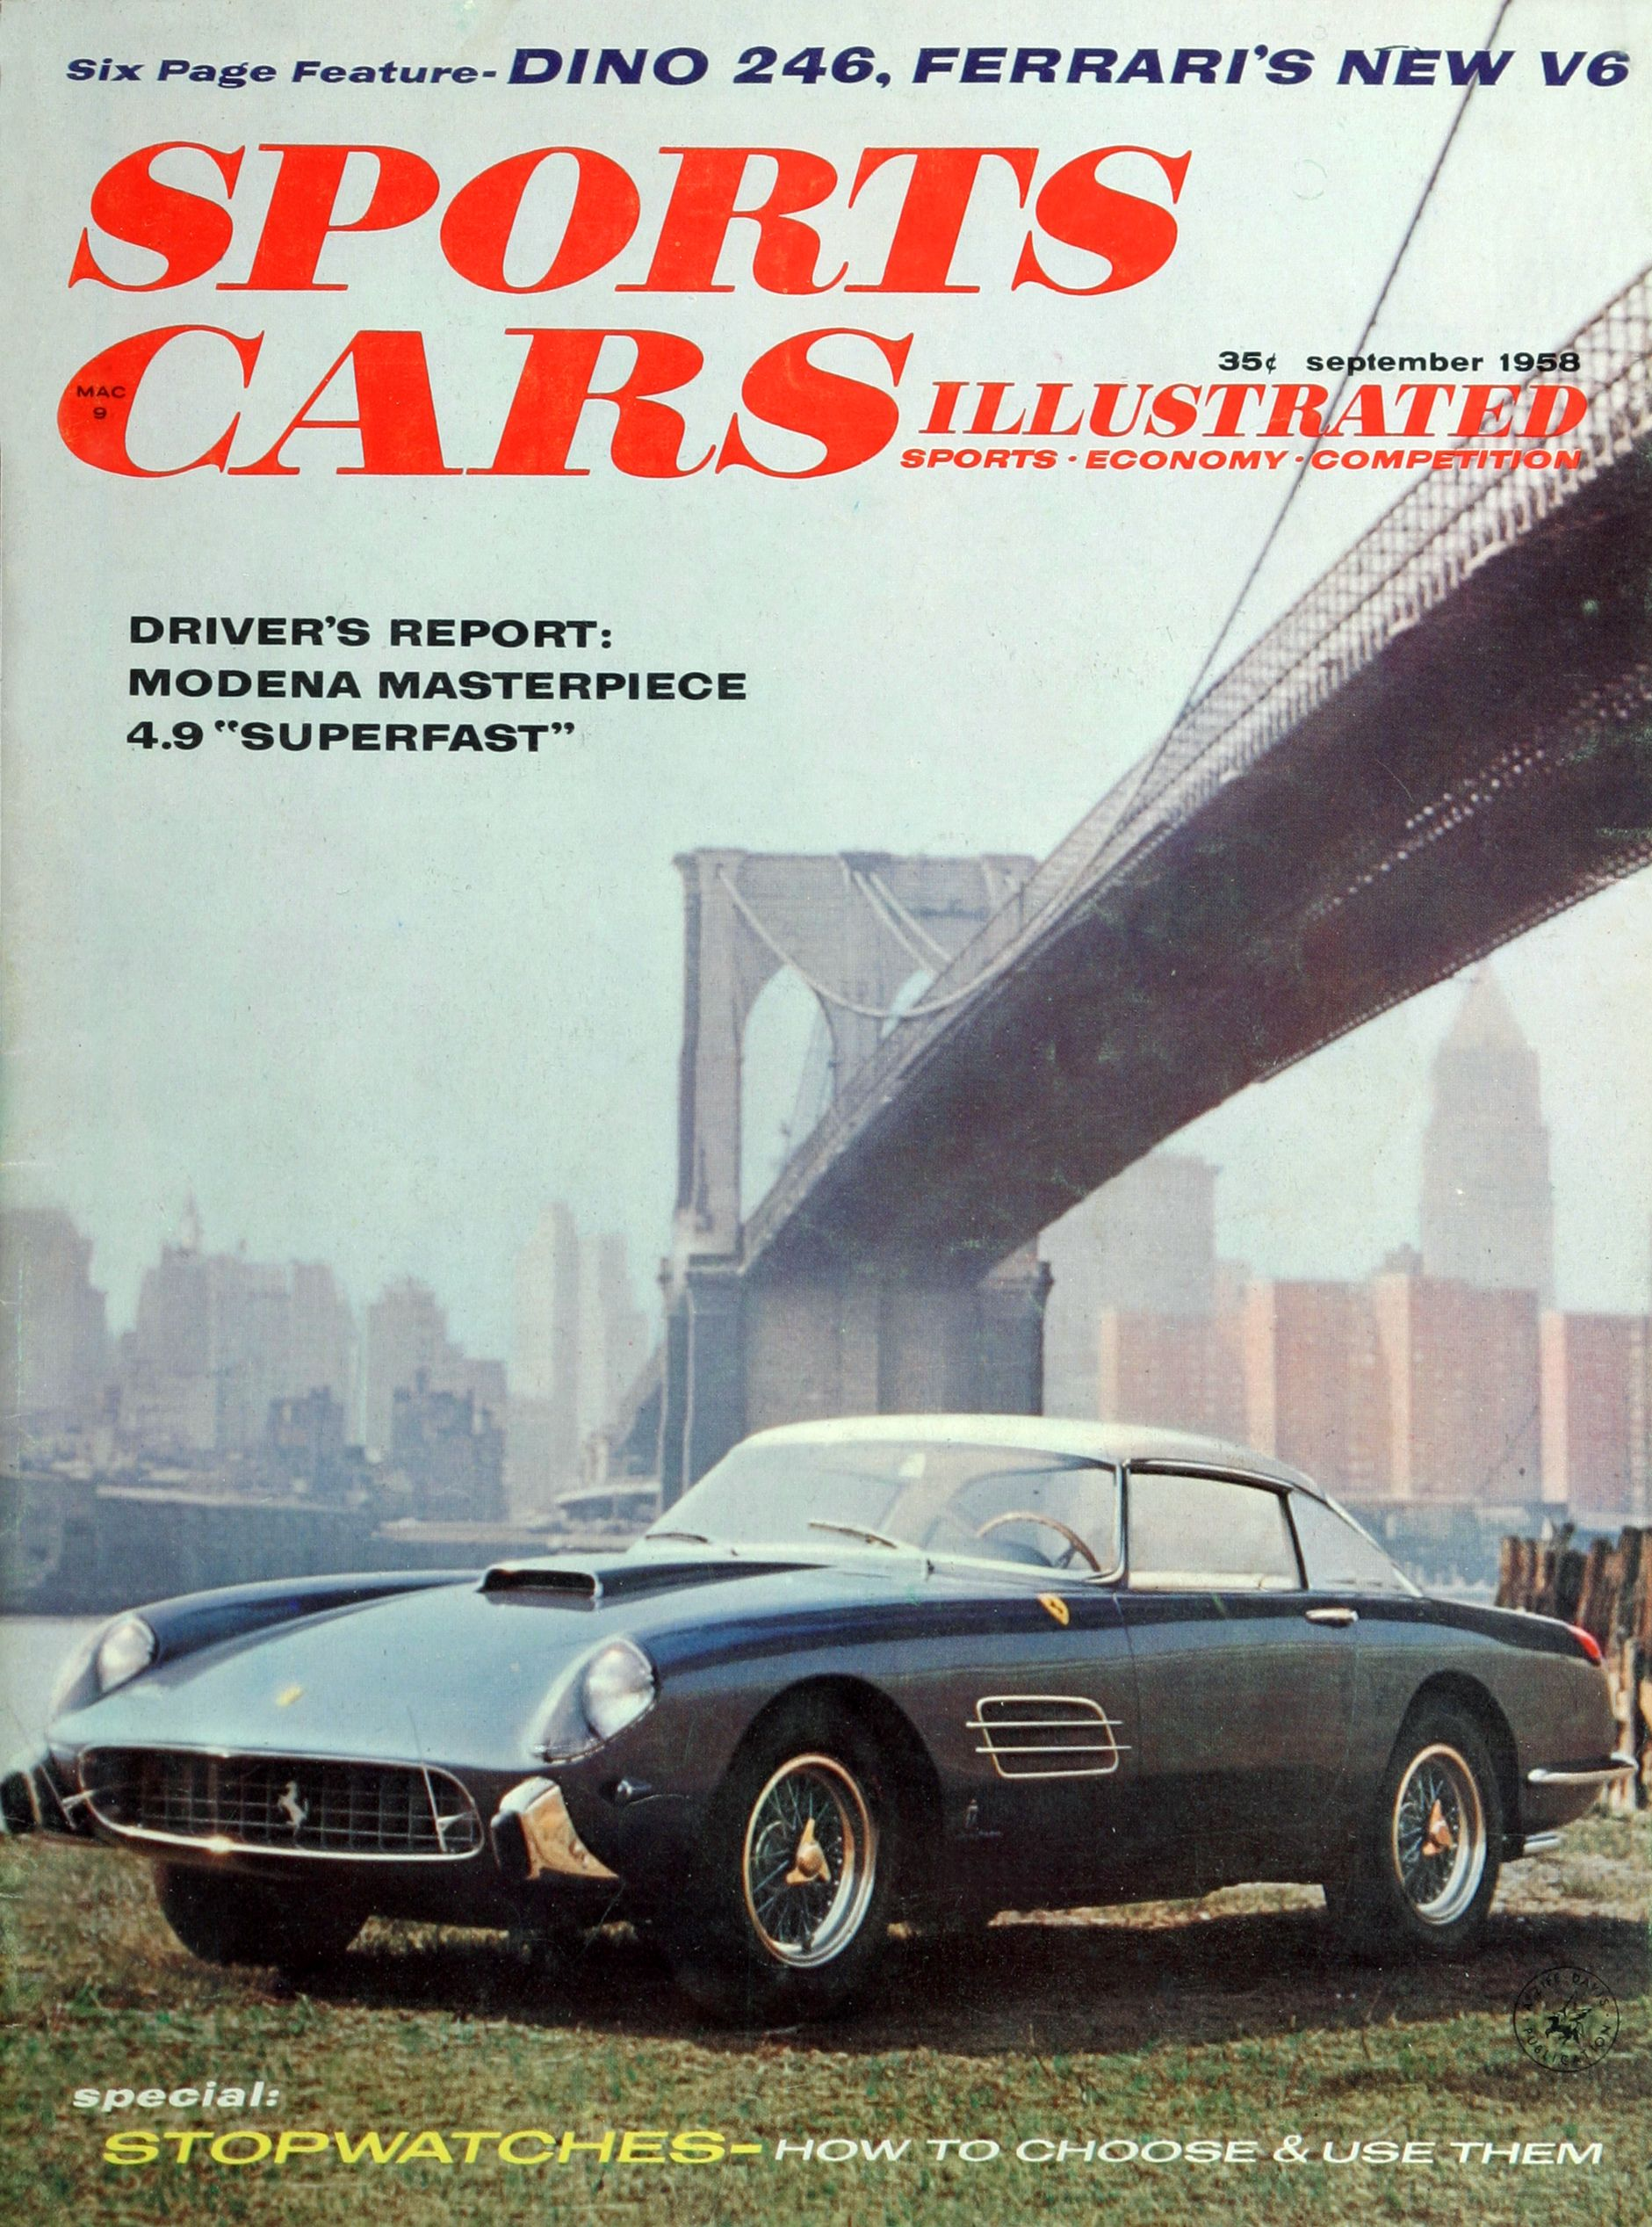 You choose the Issue The Motor Magazine Sept-Dec 1959